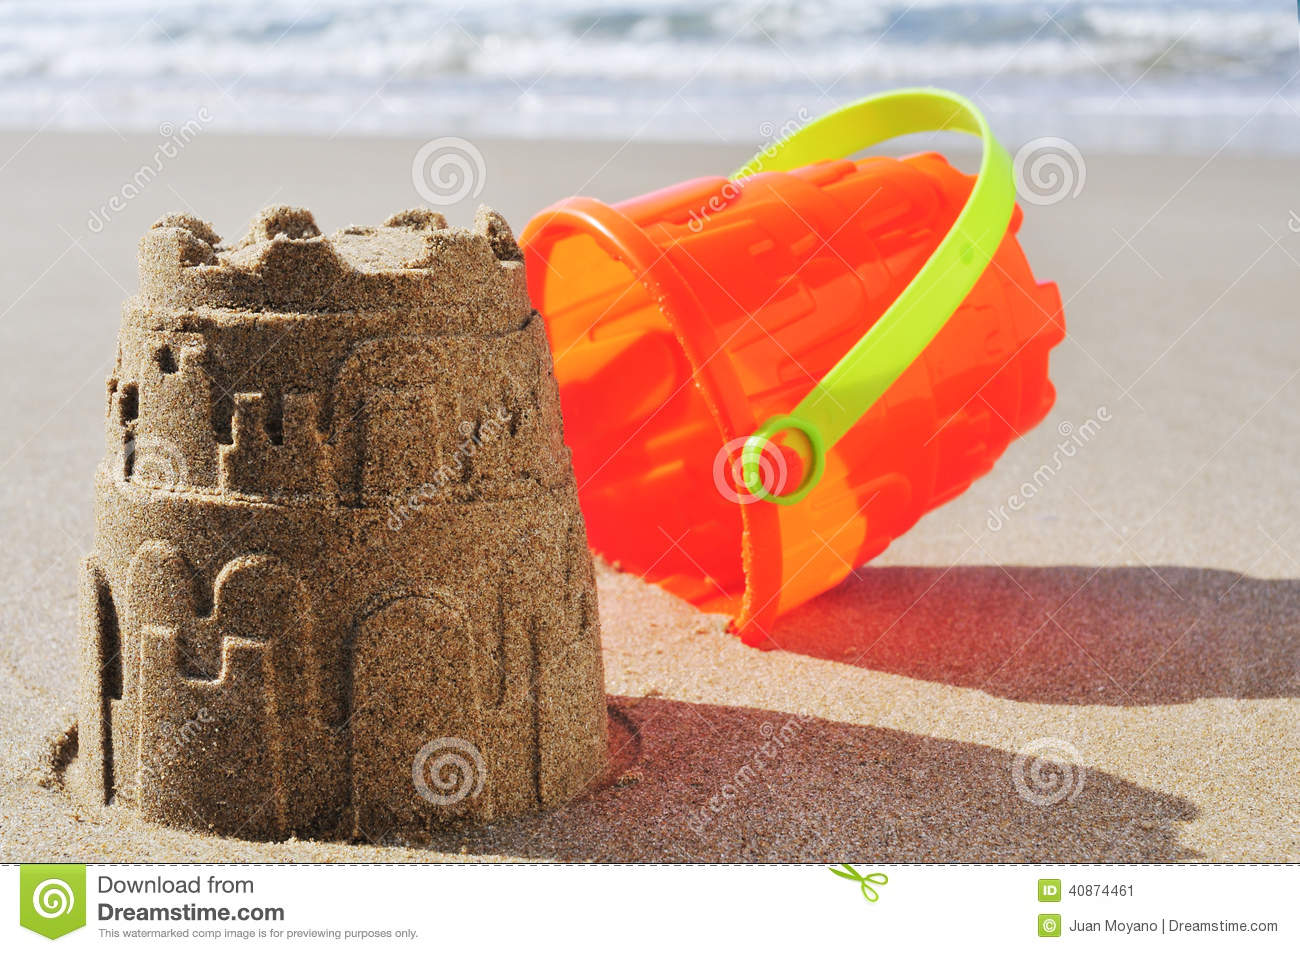 Download Toy Bucket Sandcastle On The Sand Of A Beach Stock Image - Image of happy, colors: 40874461